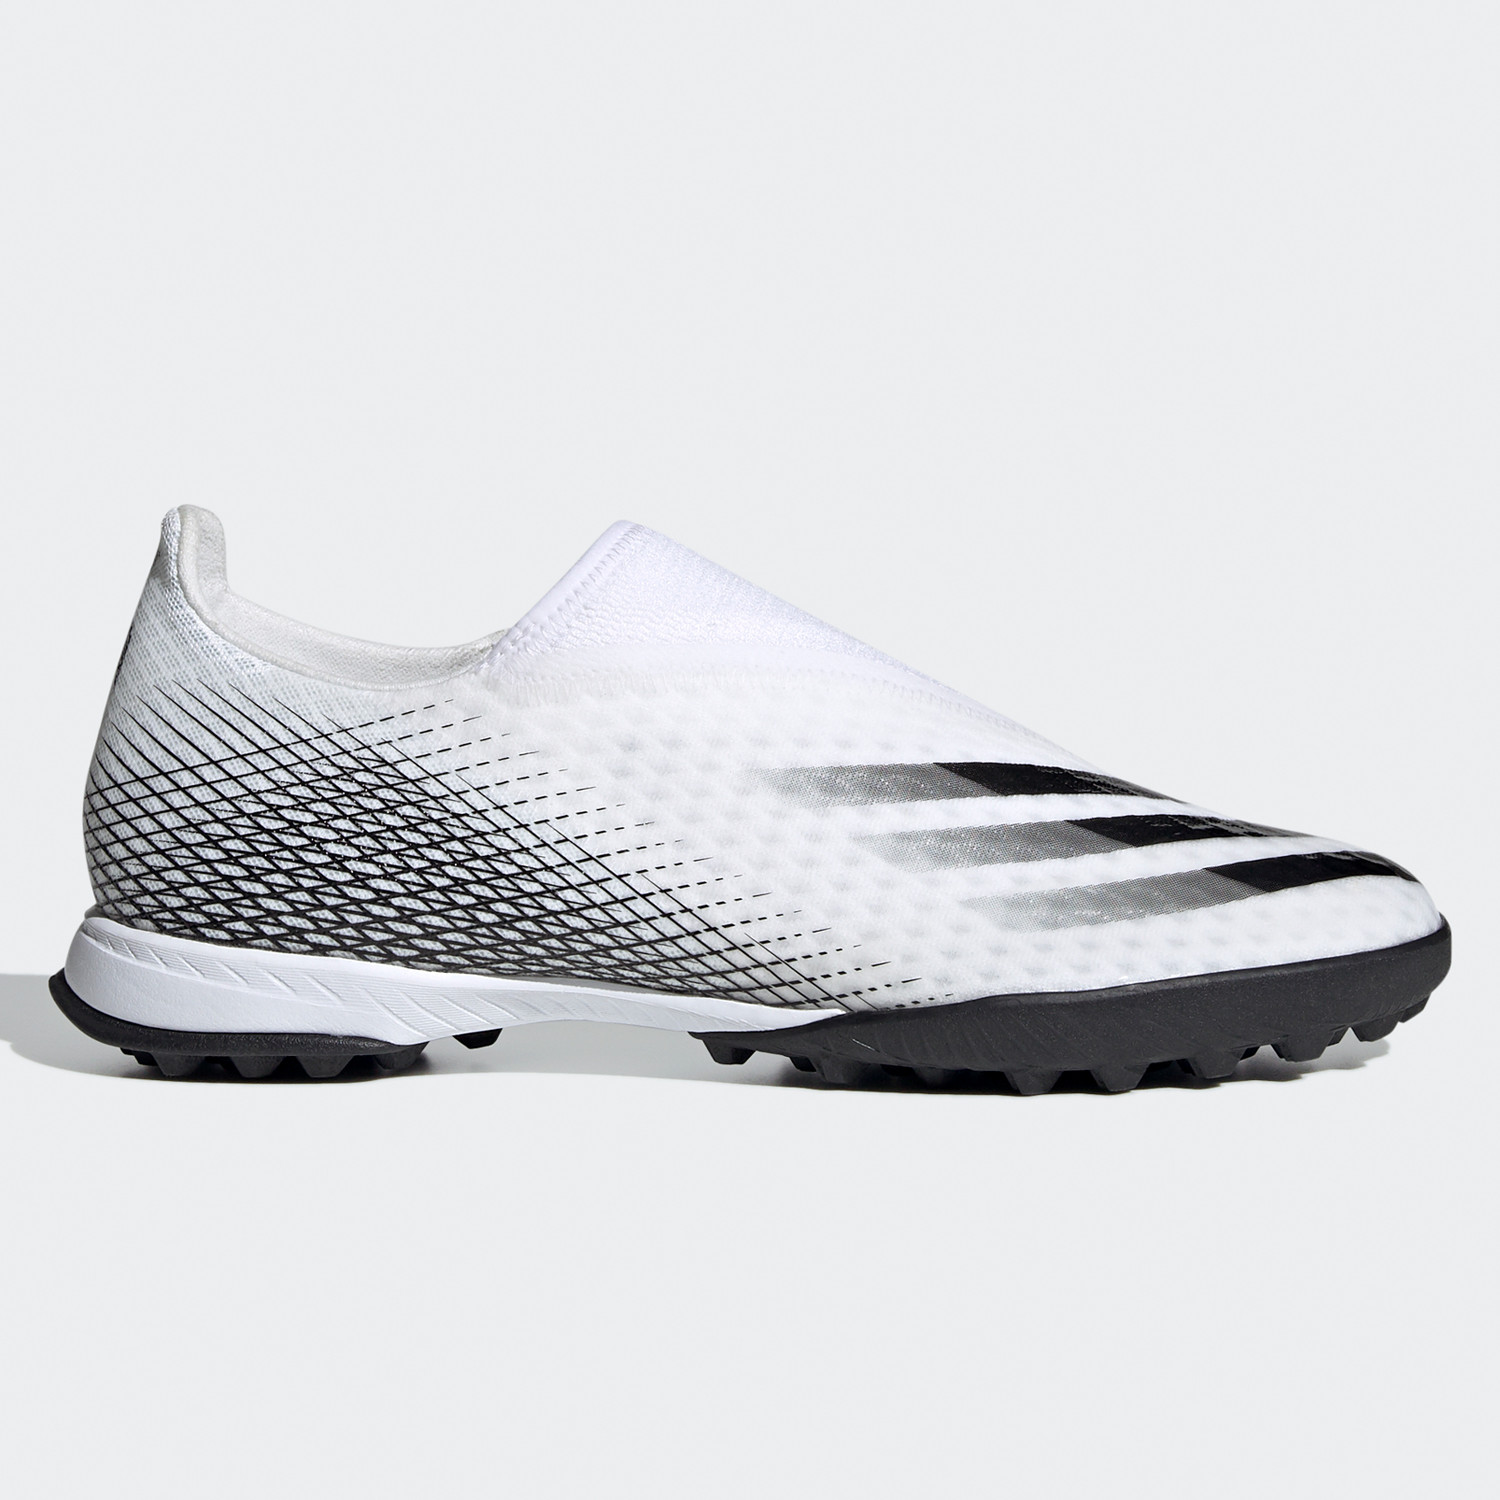 adidas Performance X Ghosted.3 Laceless Turf Ανδρικά Ποδοσφαιρικά Παπούτσια (9000059071_7708)